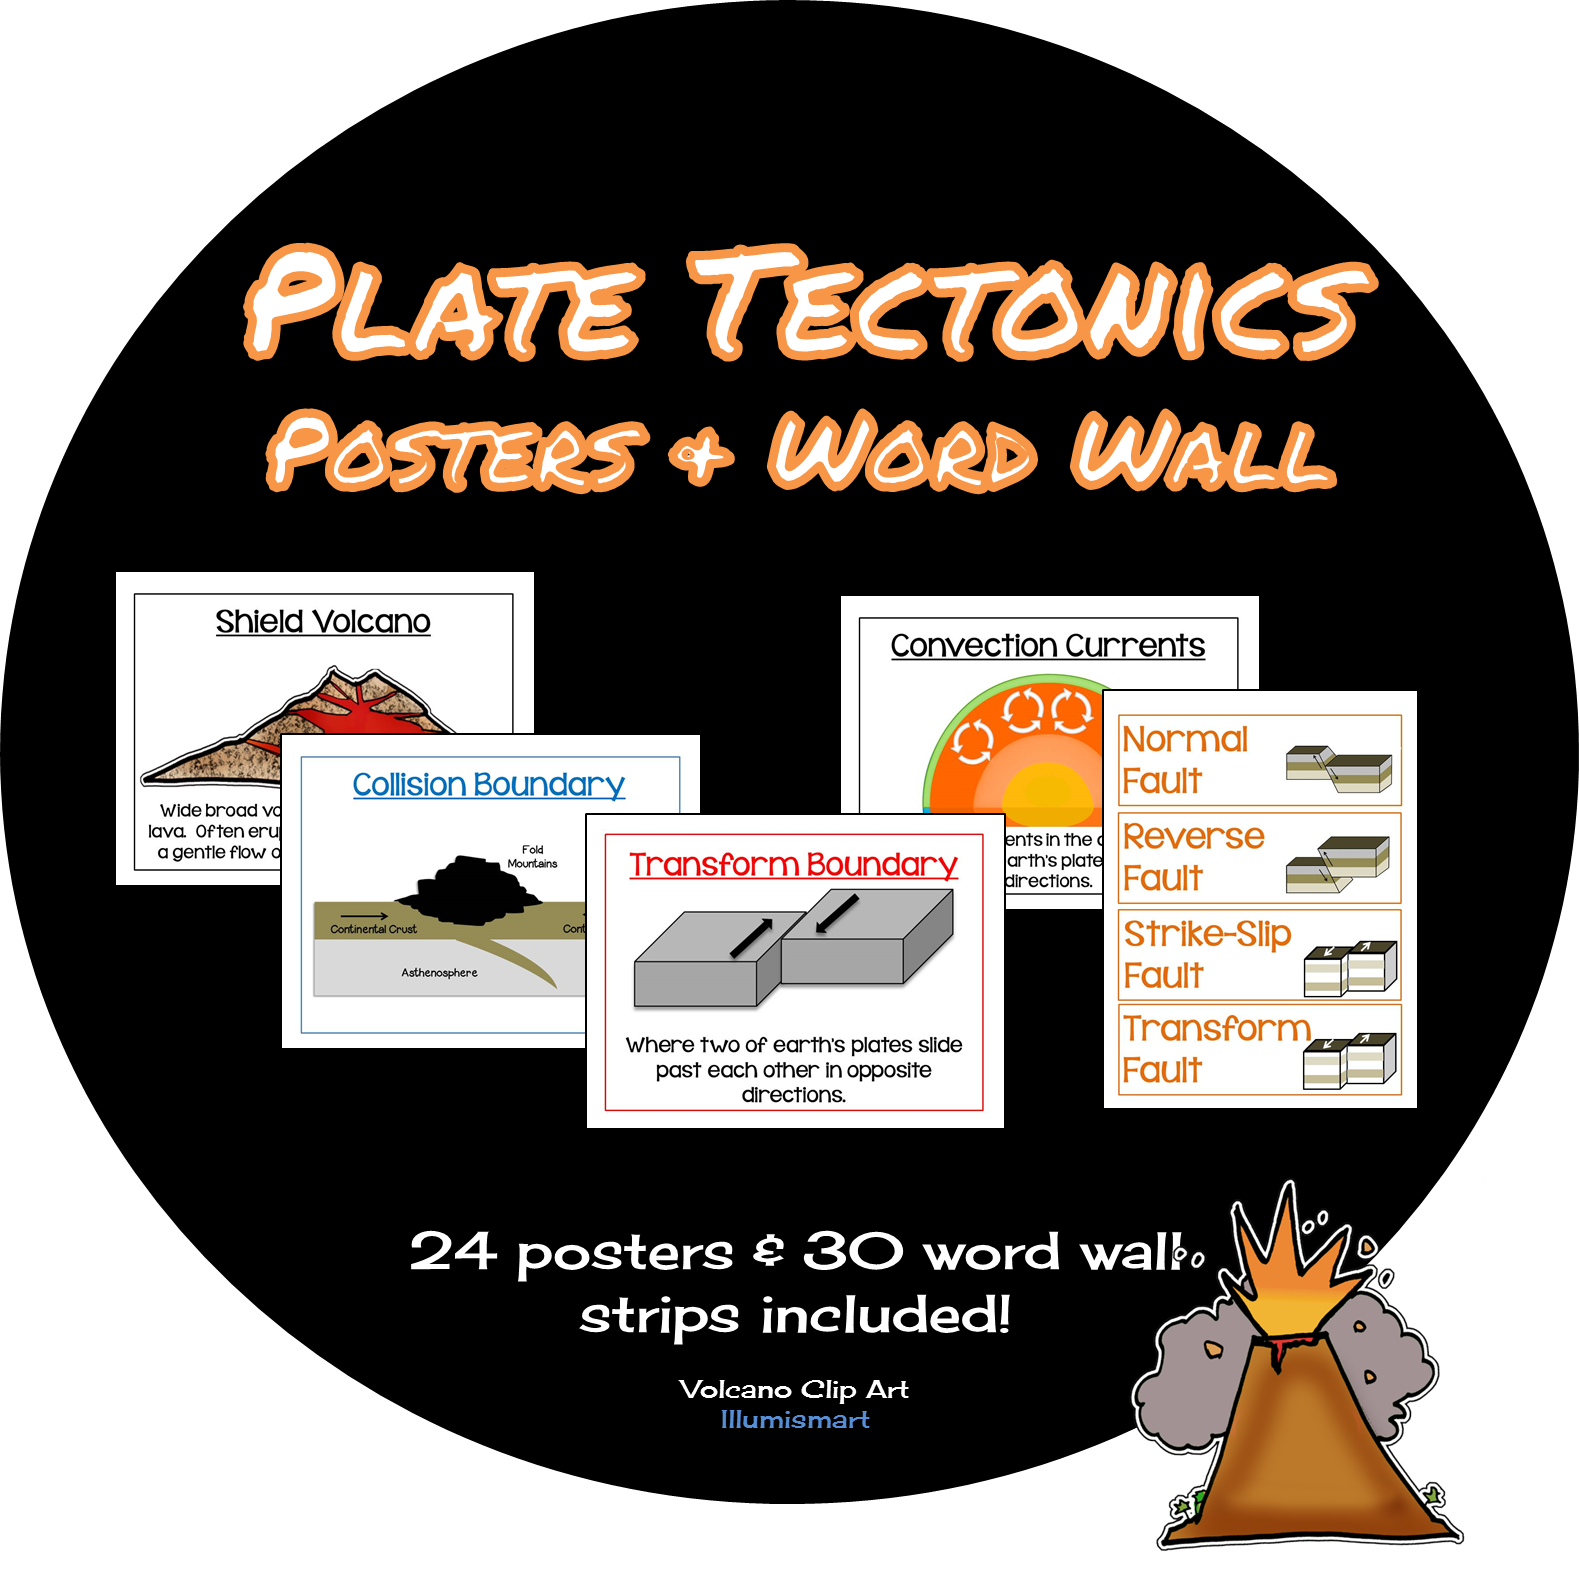 Plate Tectonics Posters And Word Wall